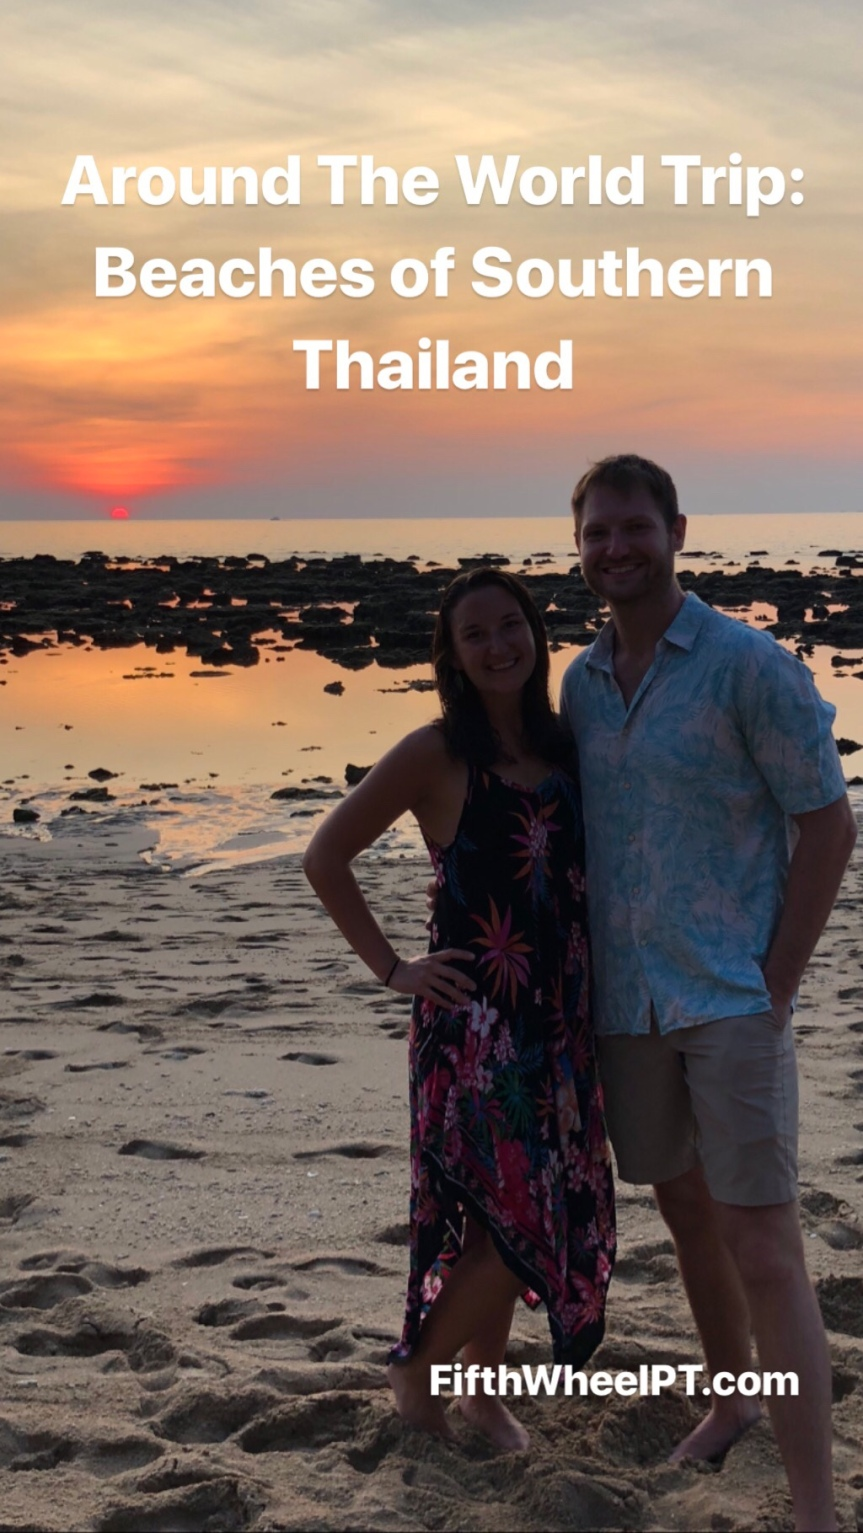 Around the World Trip: The Beaches of SouthernThailand